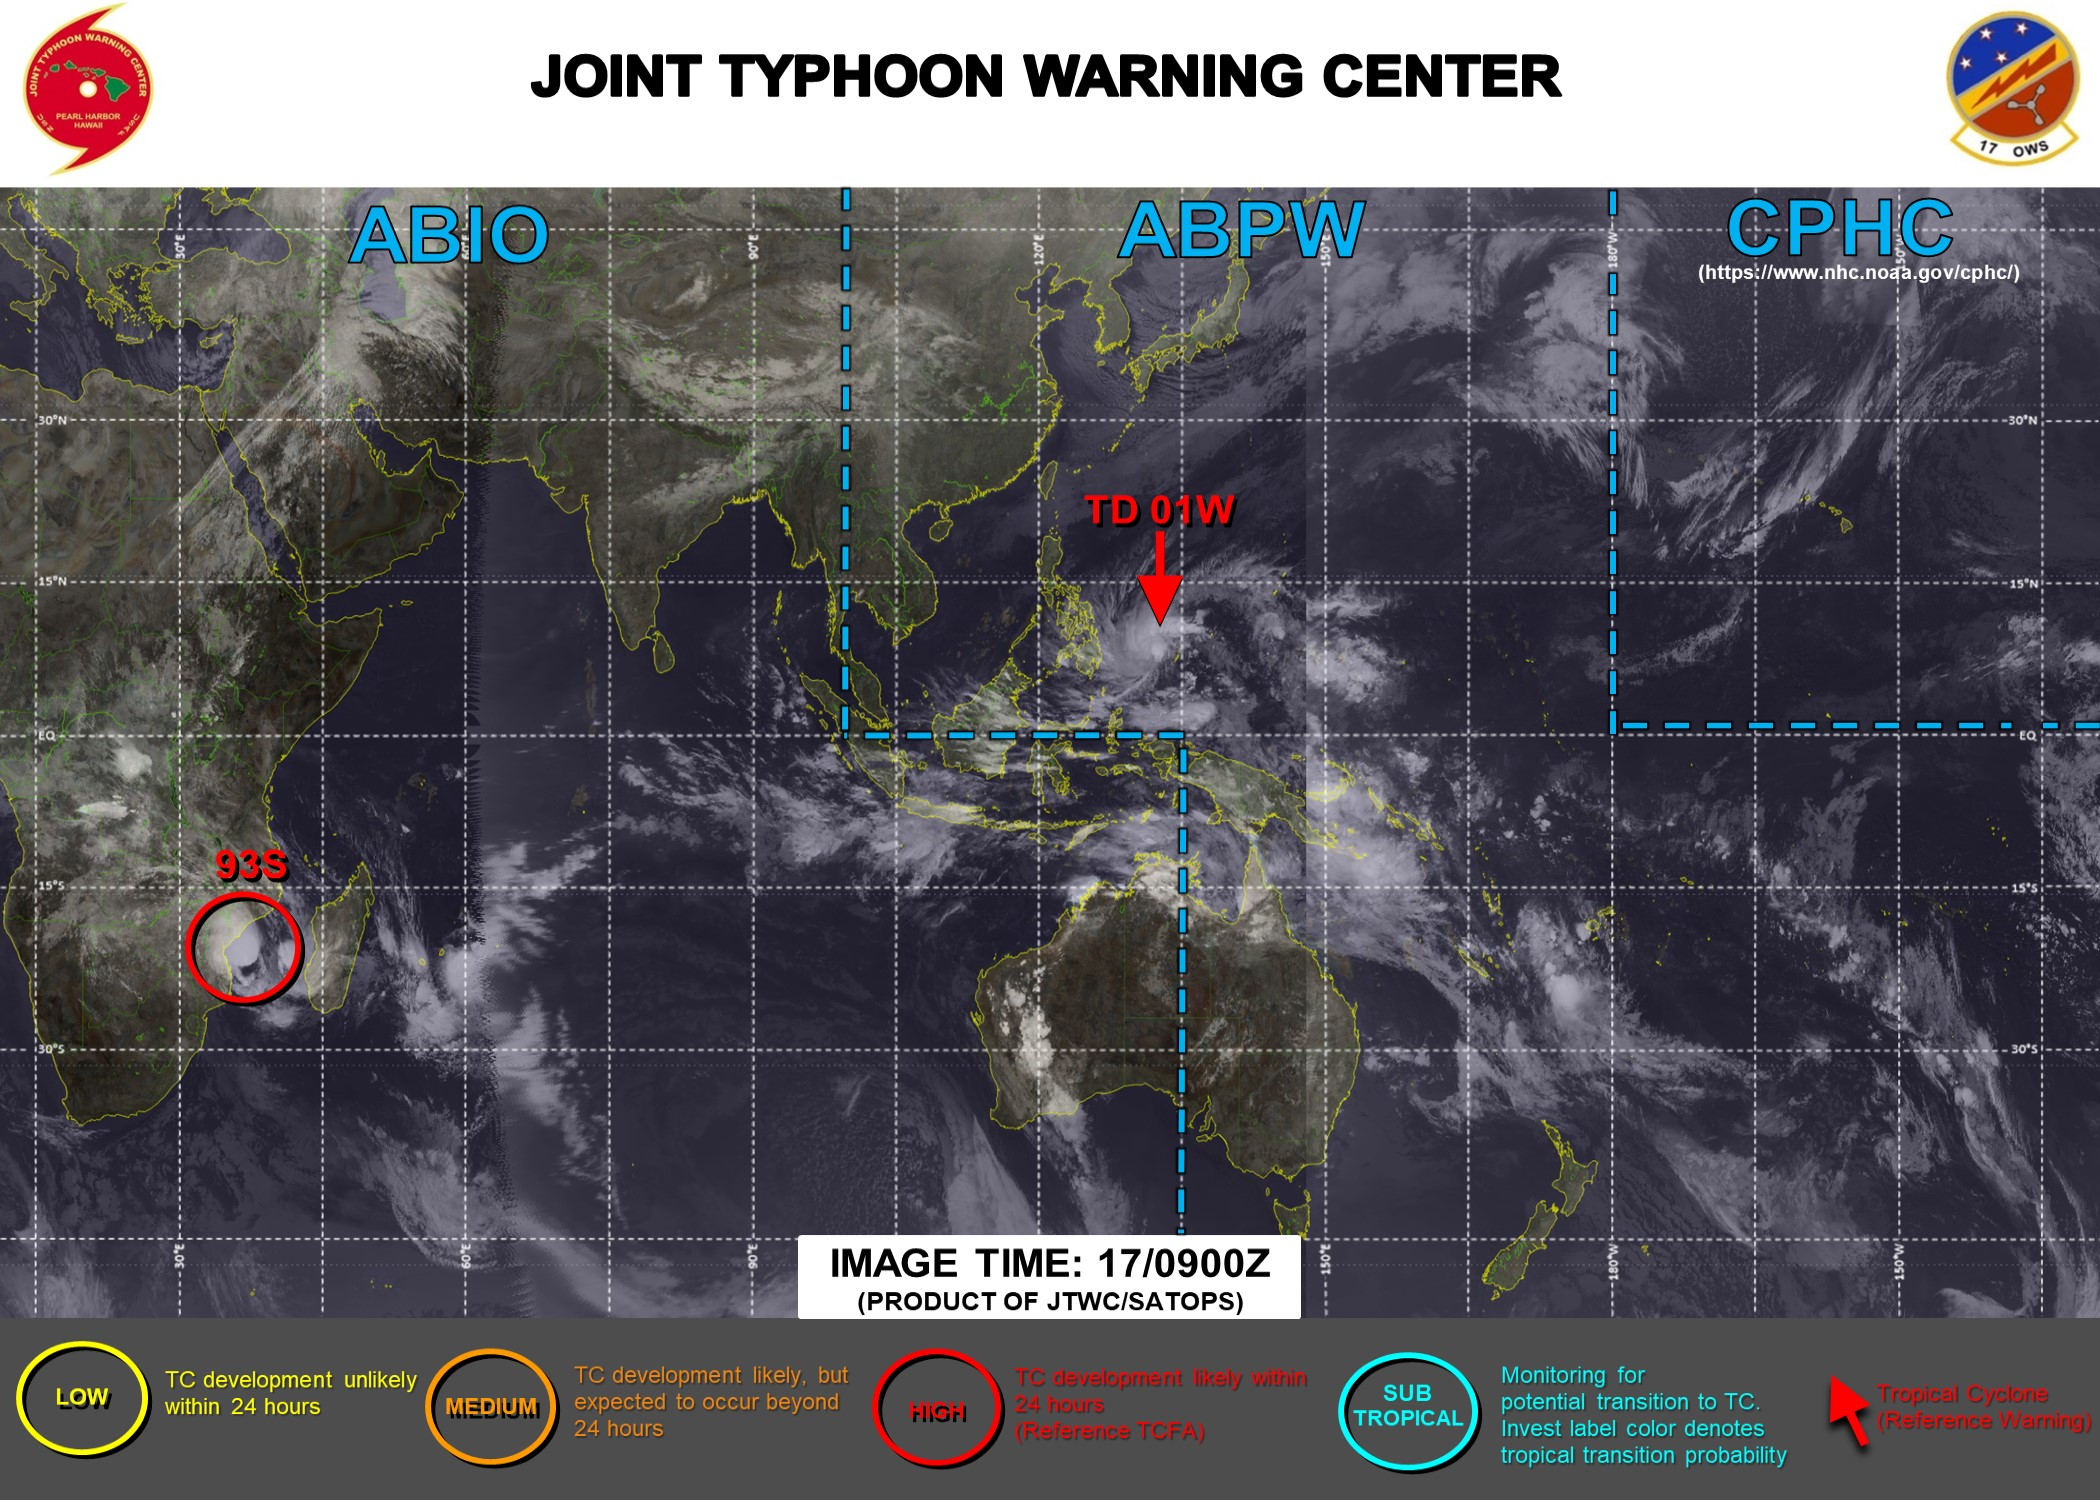 17/09UTC. INVEST 91W IS NOW TD 01W. JTWC IS ISSUING 6 HOURLY WARNINGS ON 01W. INVEST 93S IS STILL HIGH.3 HOURLY SATELLITE BULLETINS ARE ISSUED FOR 01W AND INVEST 93S.